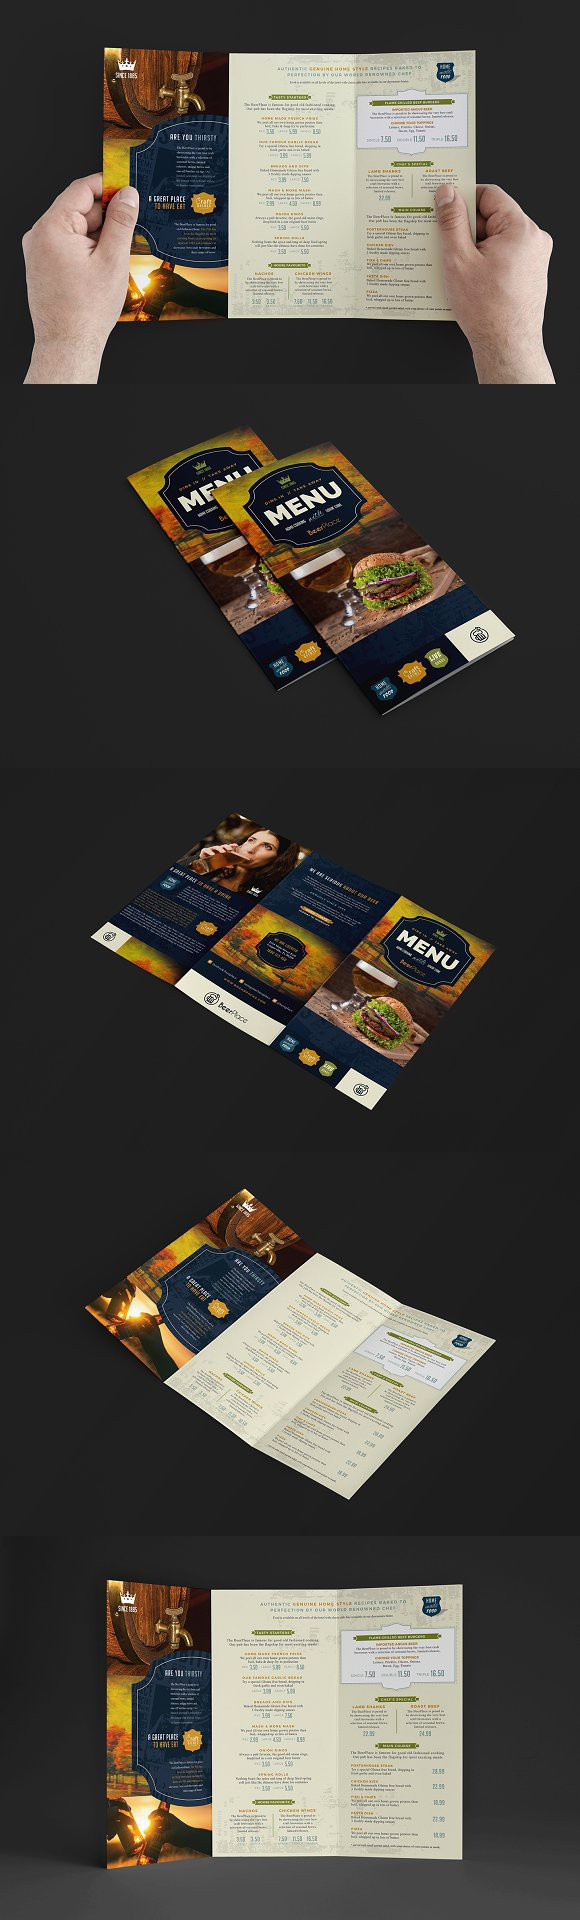 Colorful Pub Menu Template Inspiration - Example Resume and Template ...